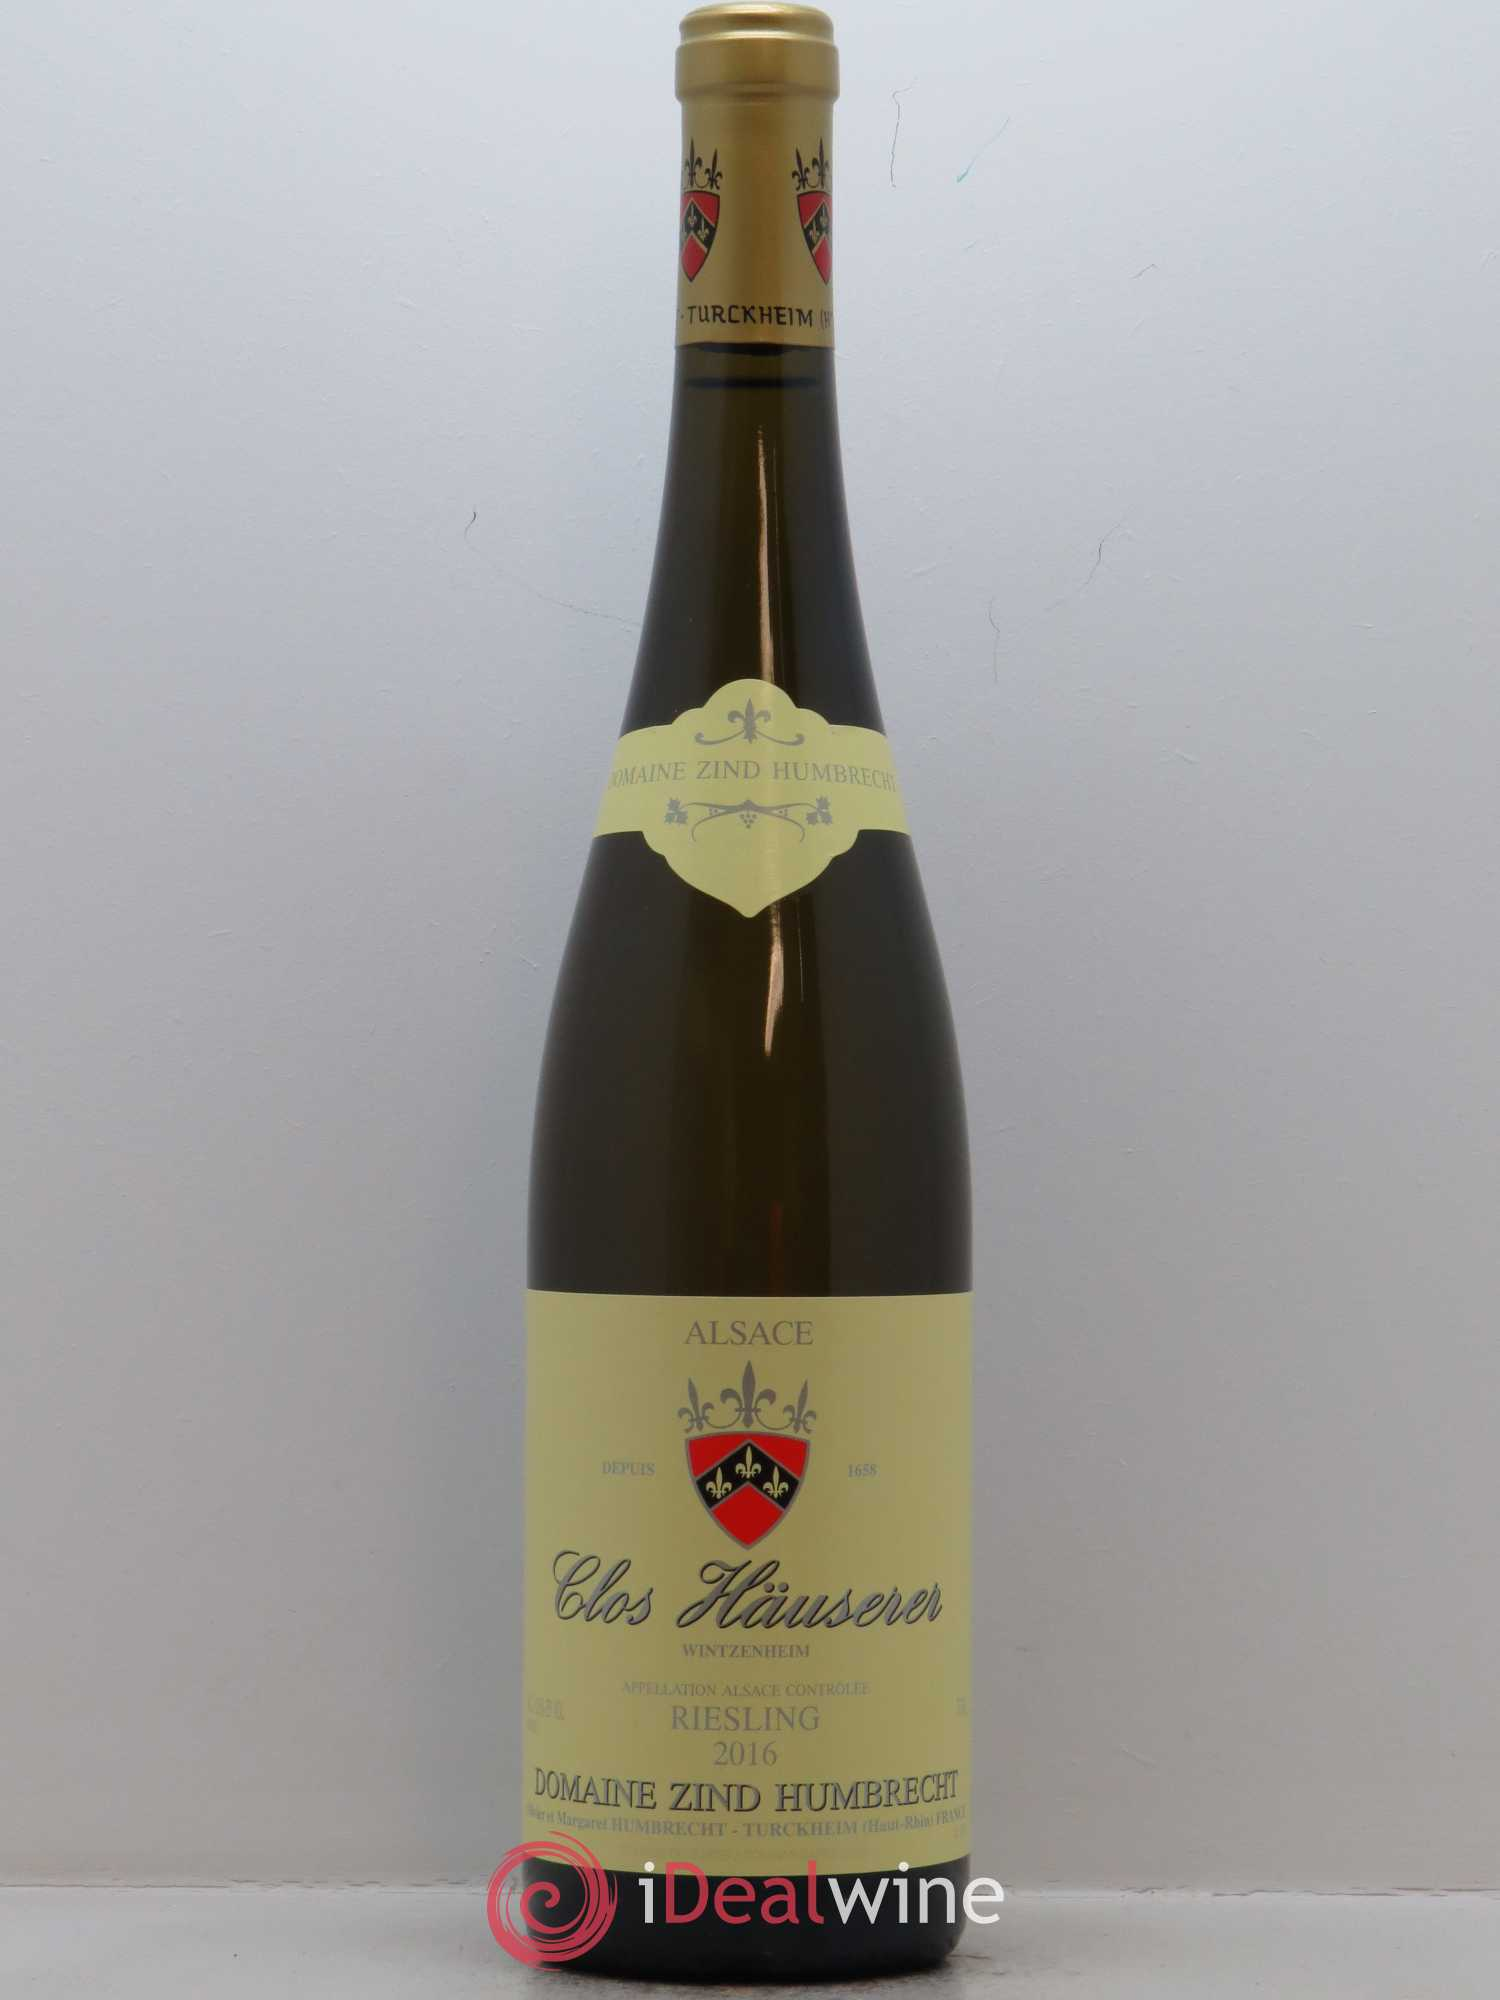 Riesling Clos Hauserer Zind-Humbrecht (Domaine)